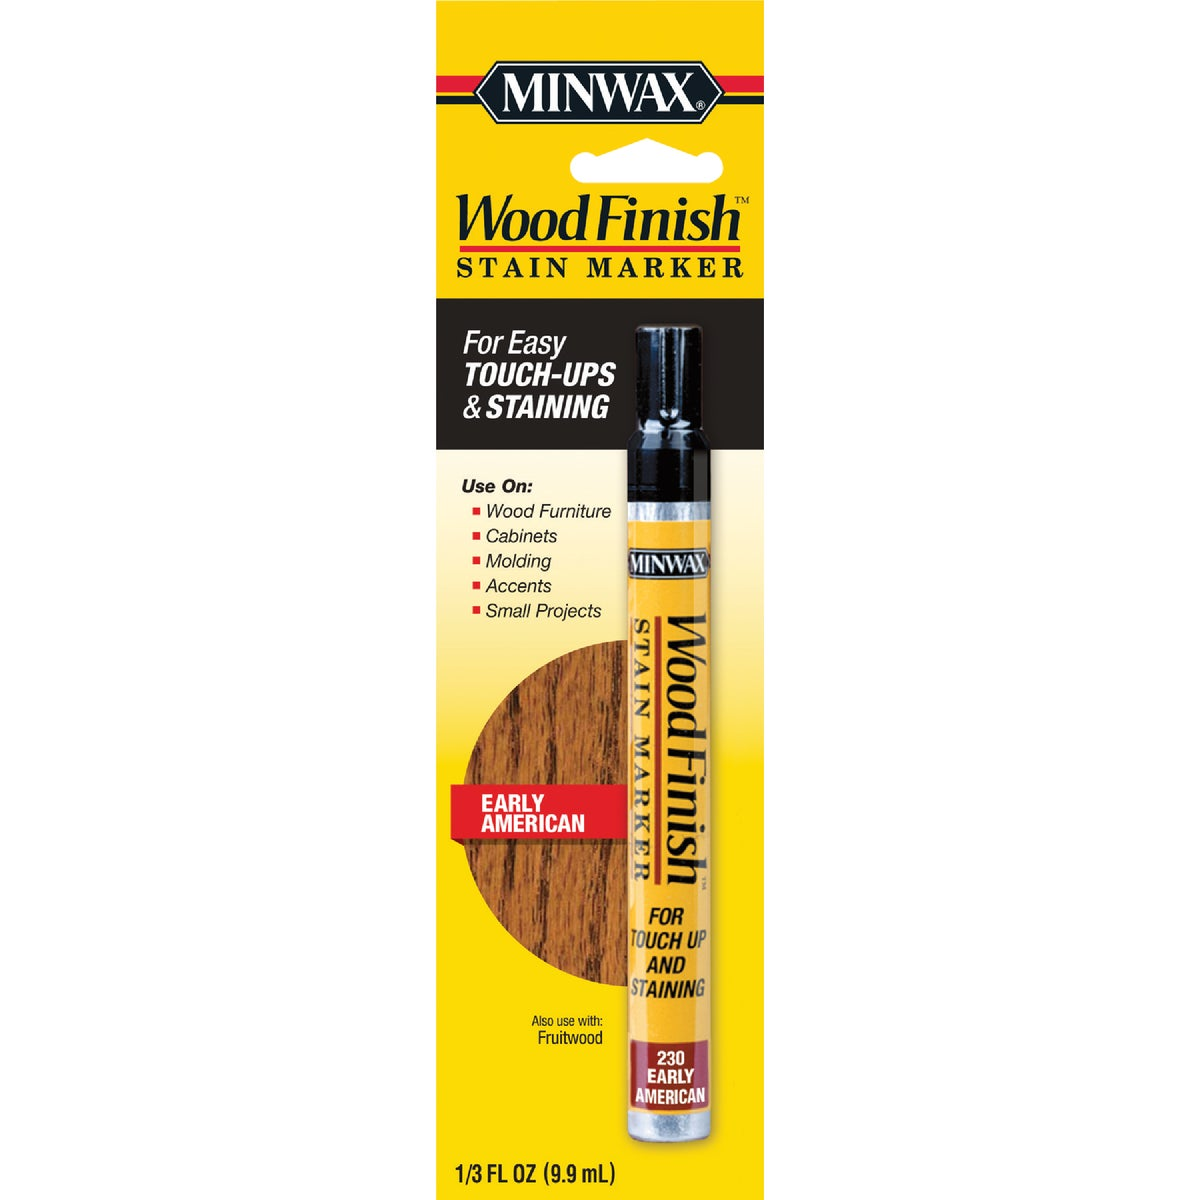 EARLY AMER STAIN MARKER - 63485 by Minwax Company